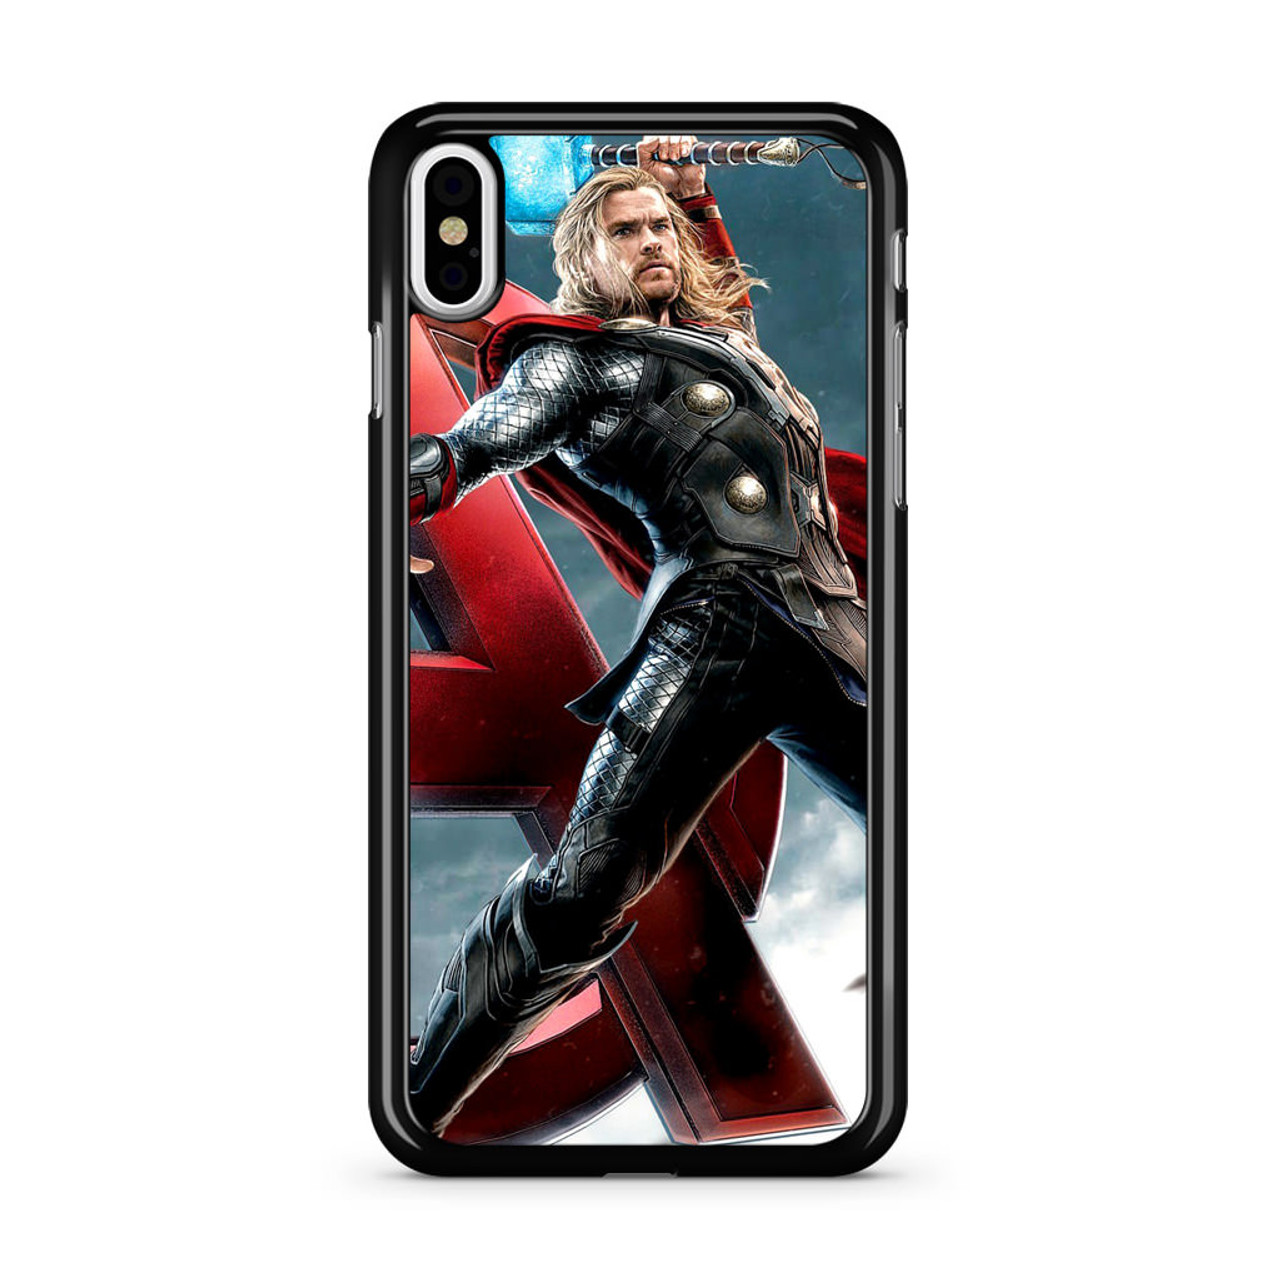 size 40 f7fe7 831a0 Thor Avengers iPhone X Case